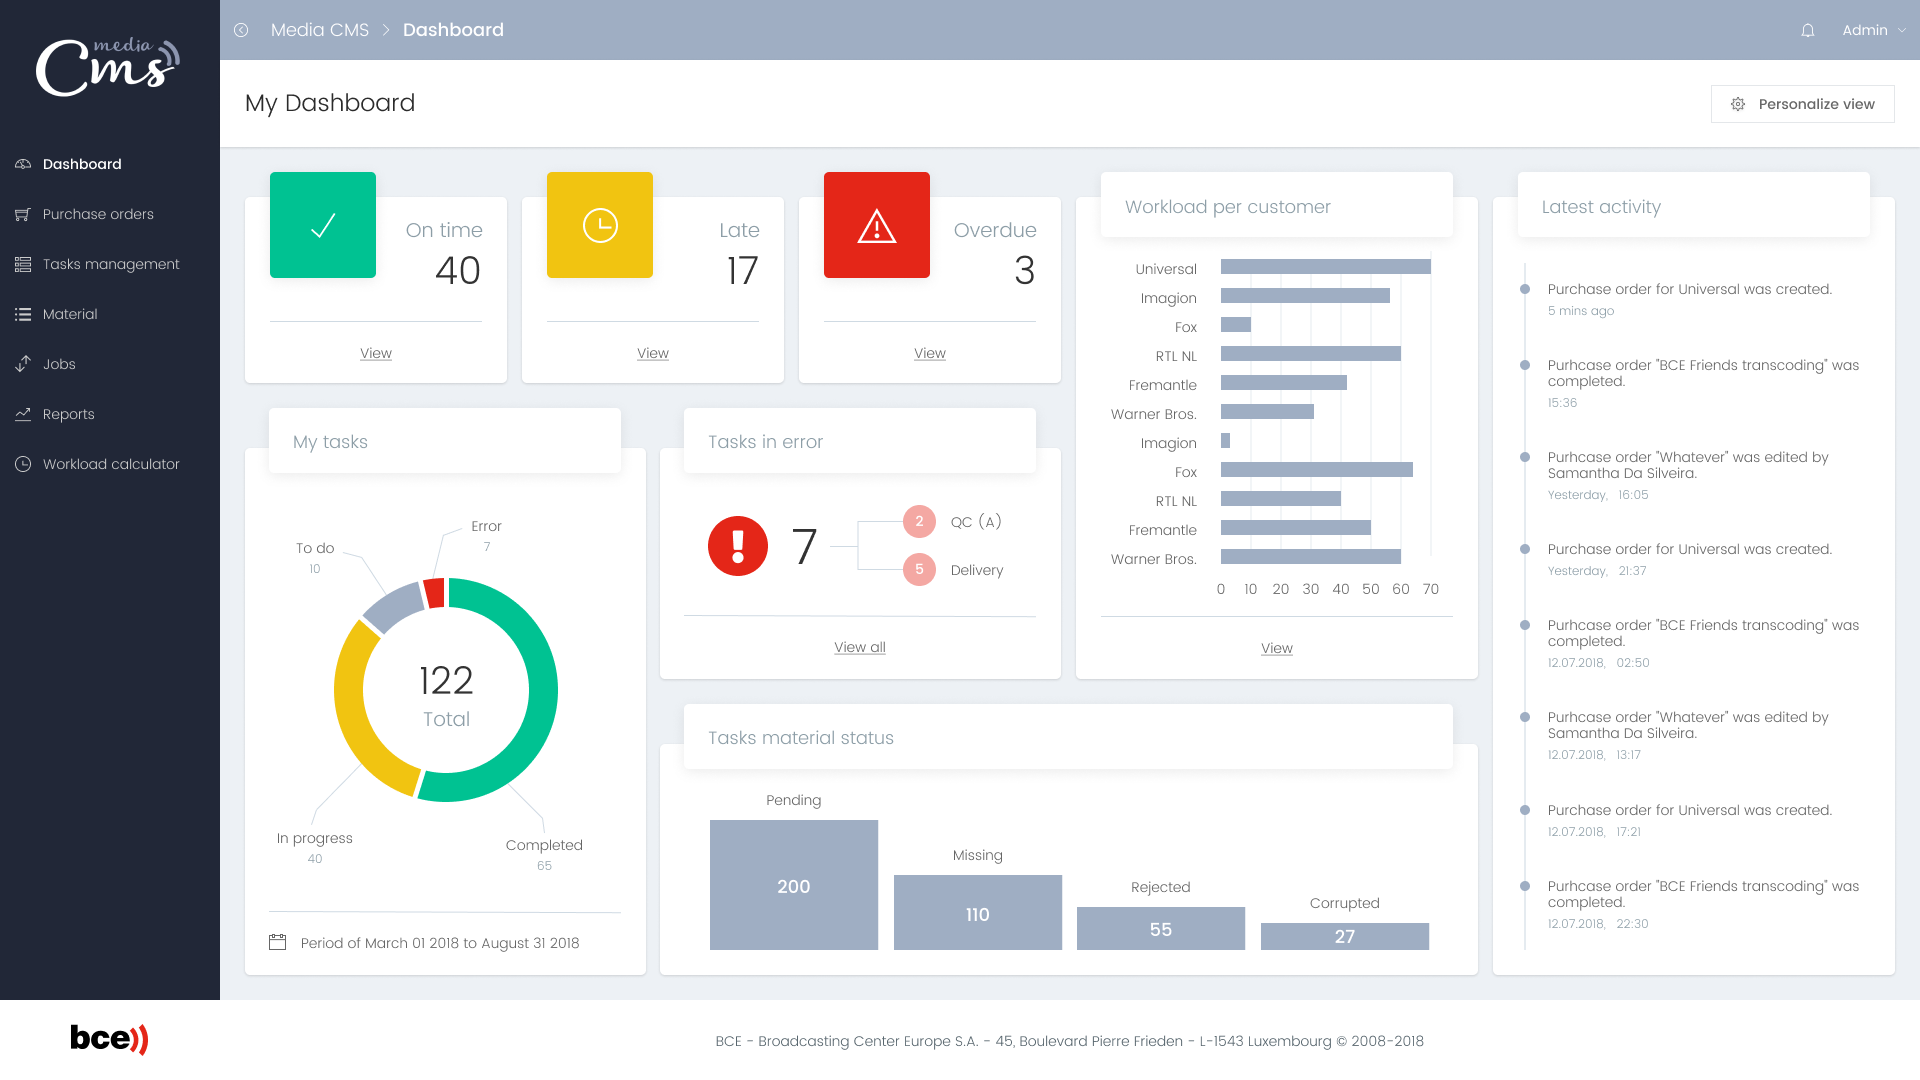 The final design for the MediaCMS—dashboard view.